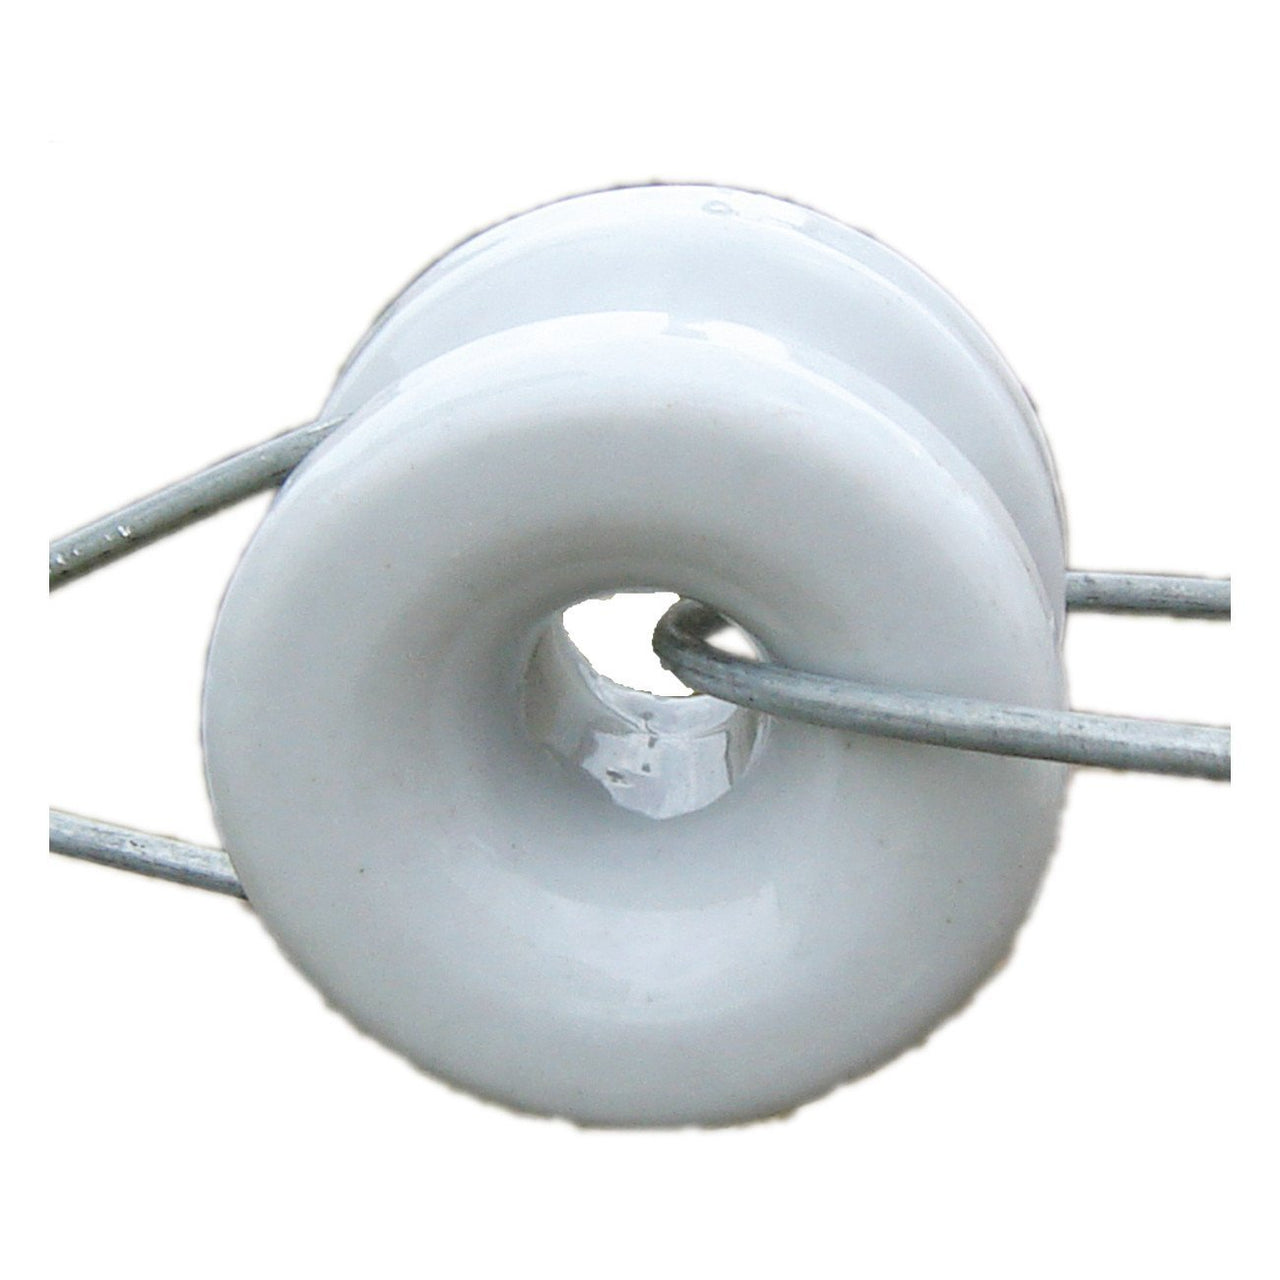 Patriot Porcelain Donut Insulator (10 Per Box) - Fencing Patriot - Canada